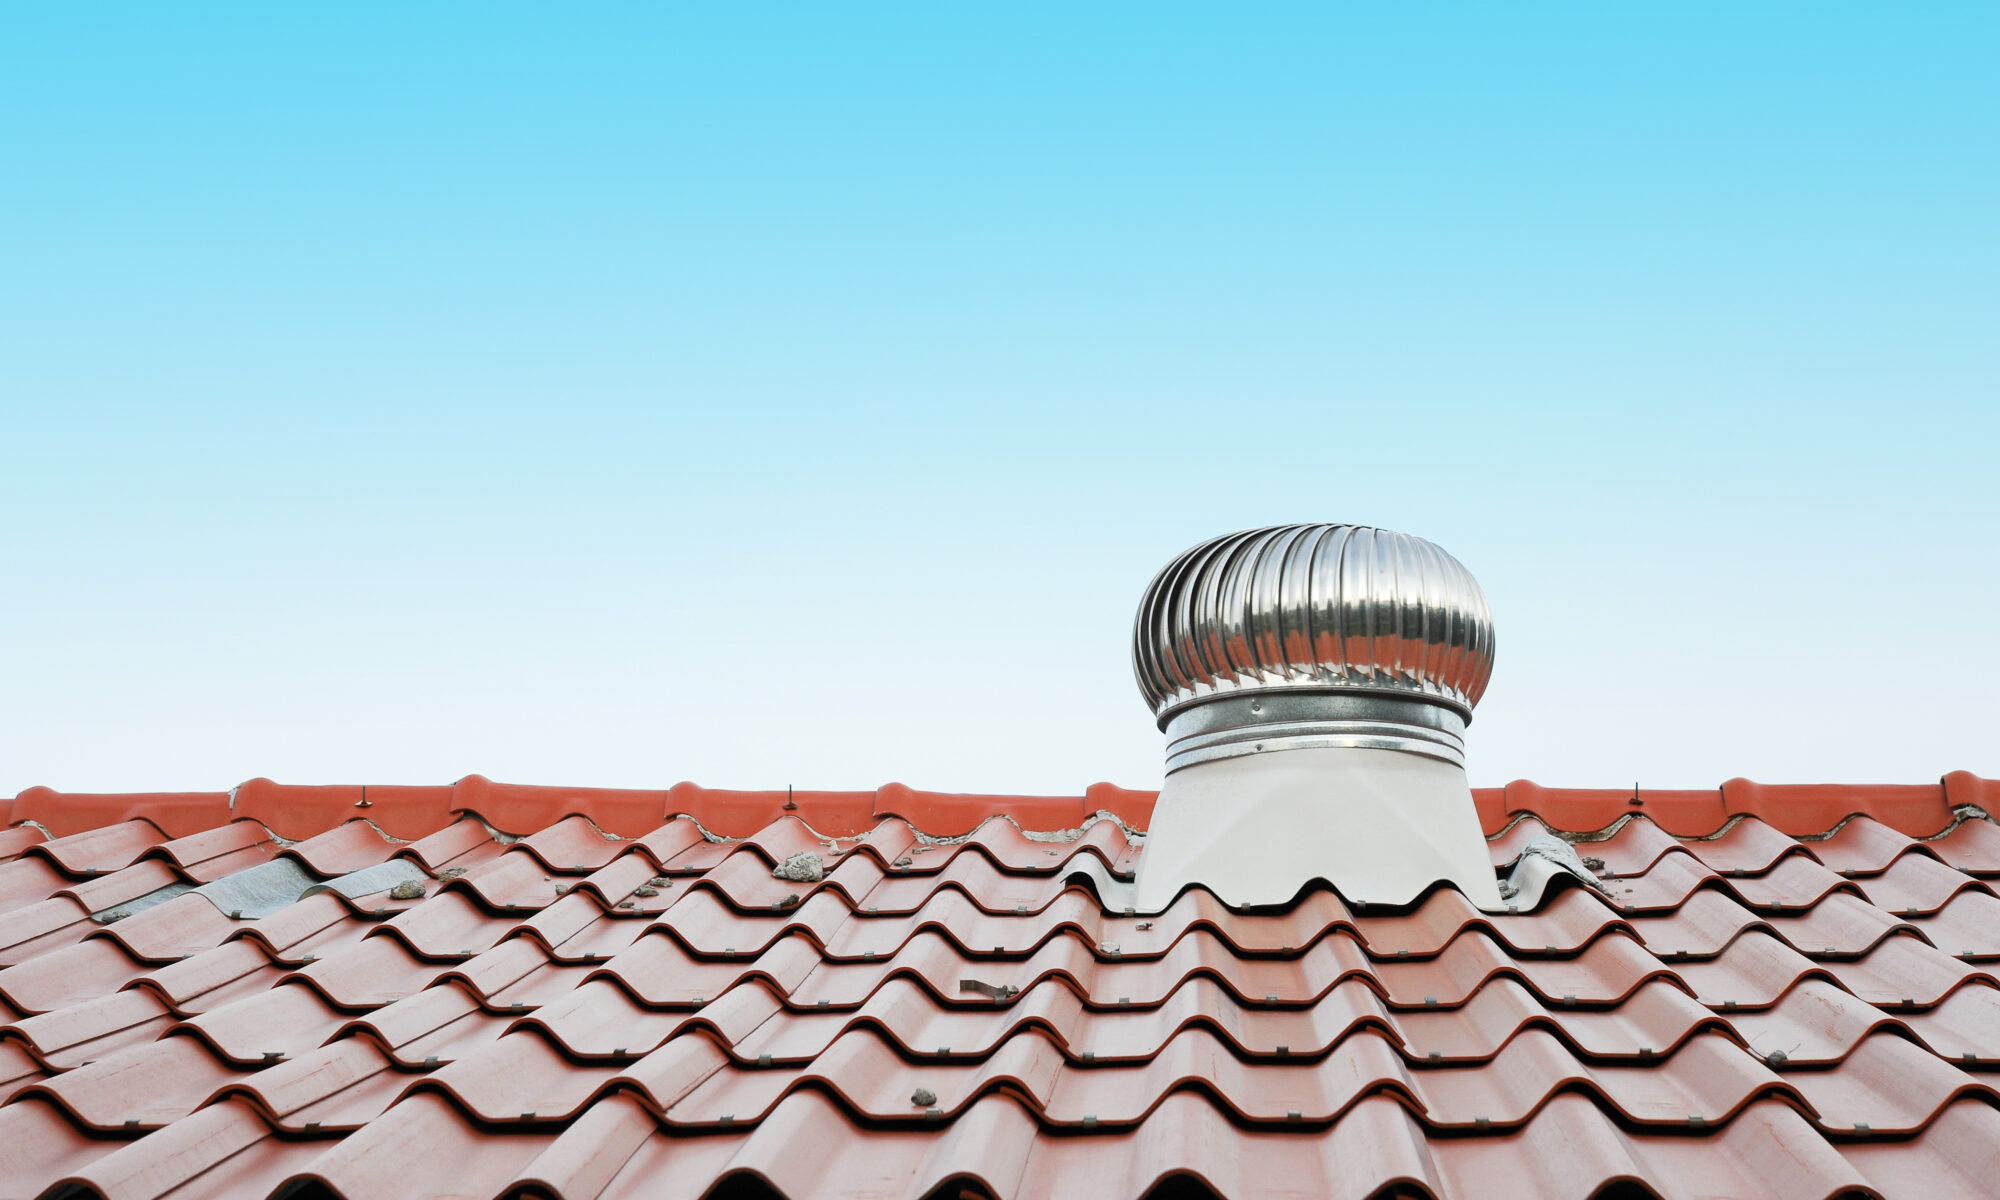 air vent on the red roof outdoor